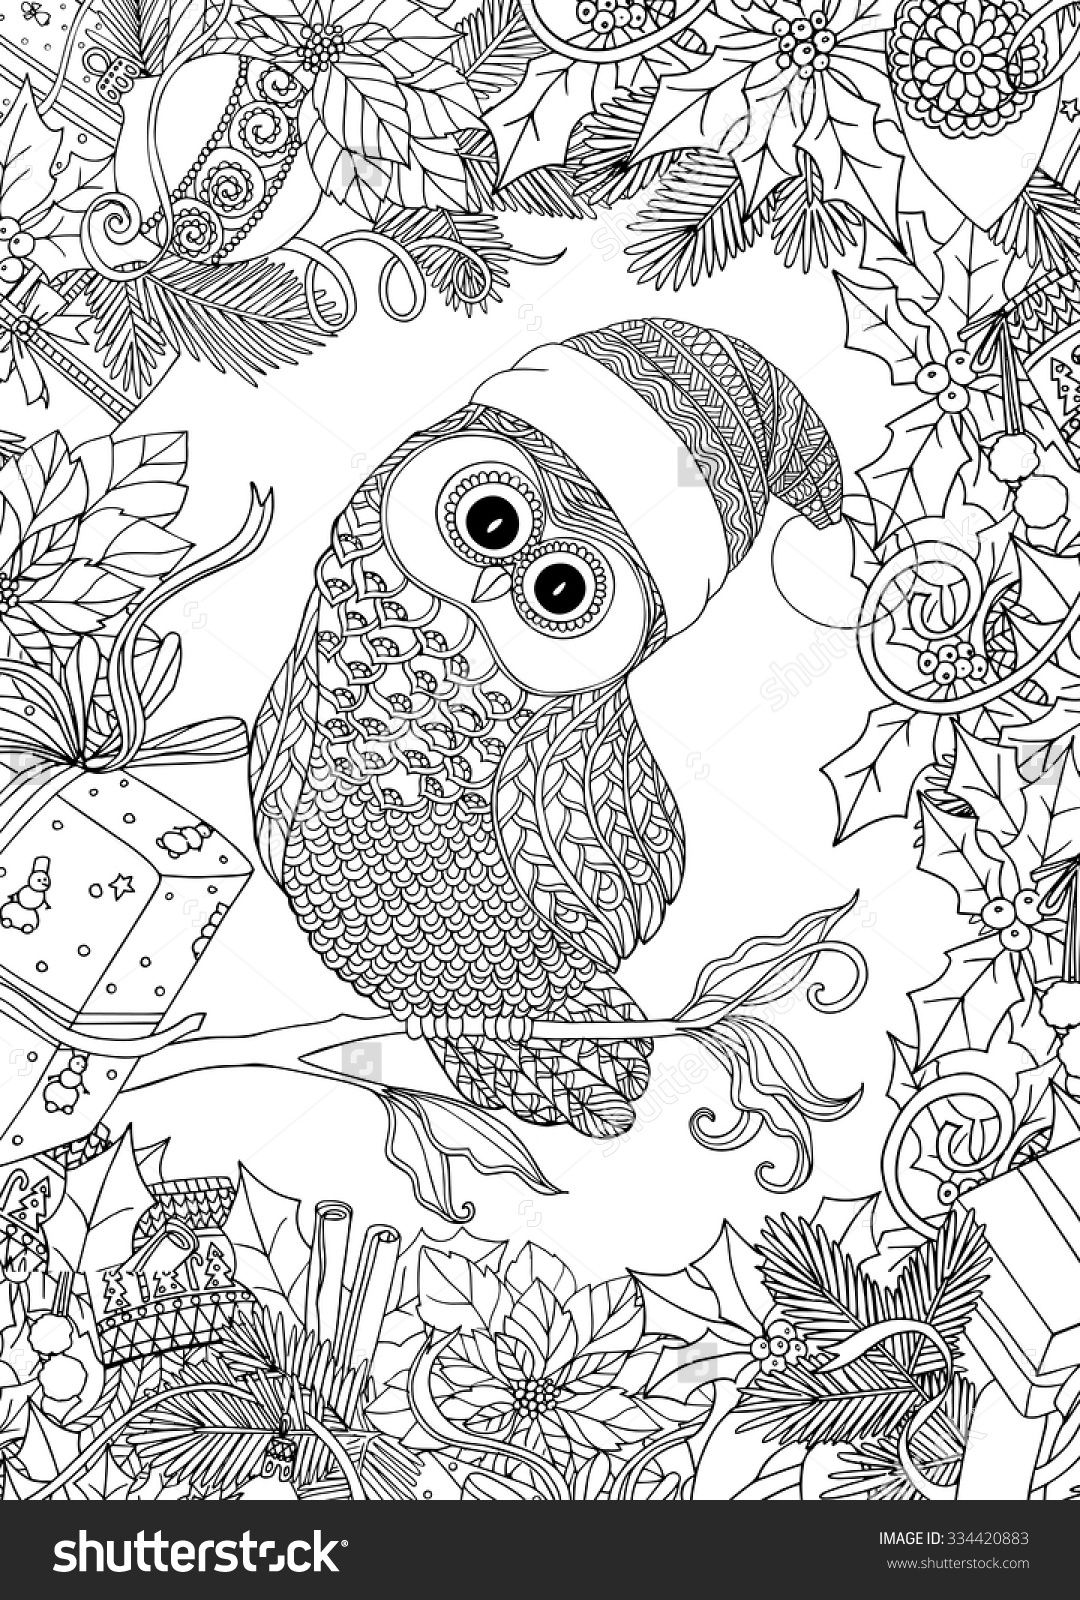 free online coloring pages for adults christmas printable merry christmas coloring pages for kids adults free christmas pages online adults for coloring